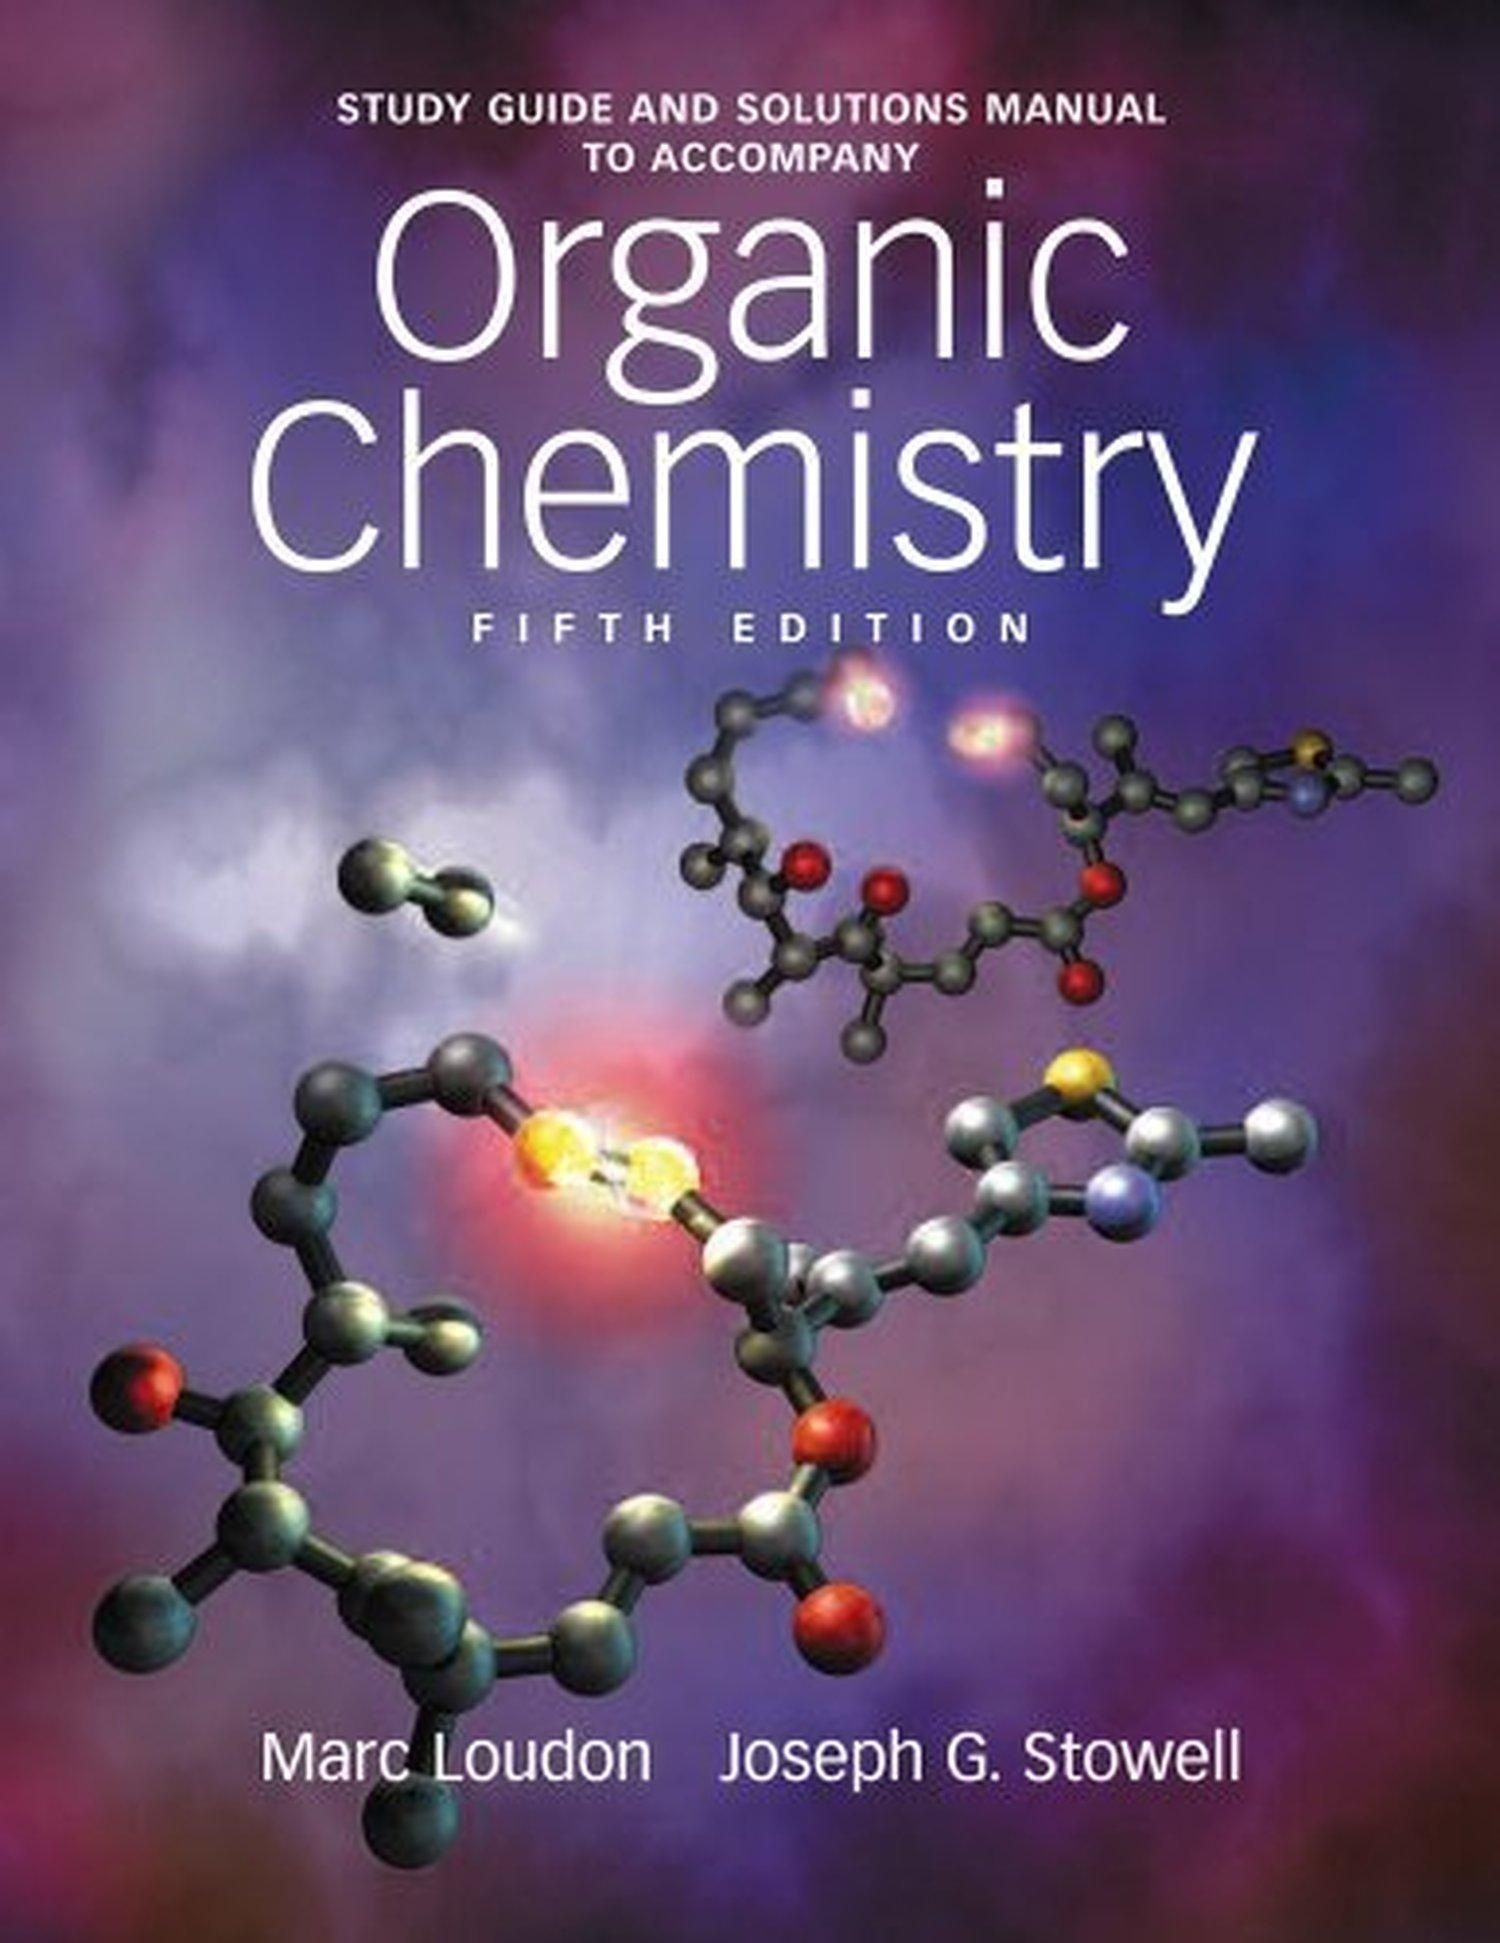 Study Guide And Solutions Manual To Accompany Organic Chemistry 5th Edition By Marc Loudon 2009 07 14 Organic Chemistry Chemistry Organic Chemistry Textbook